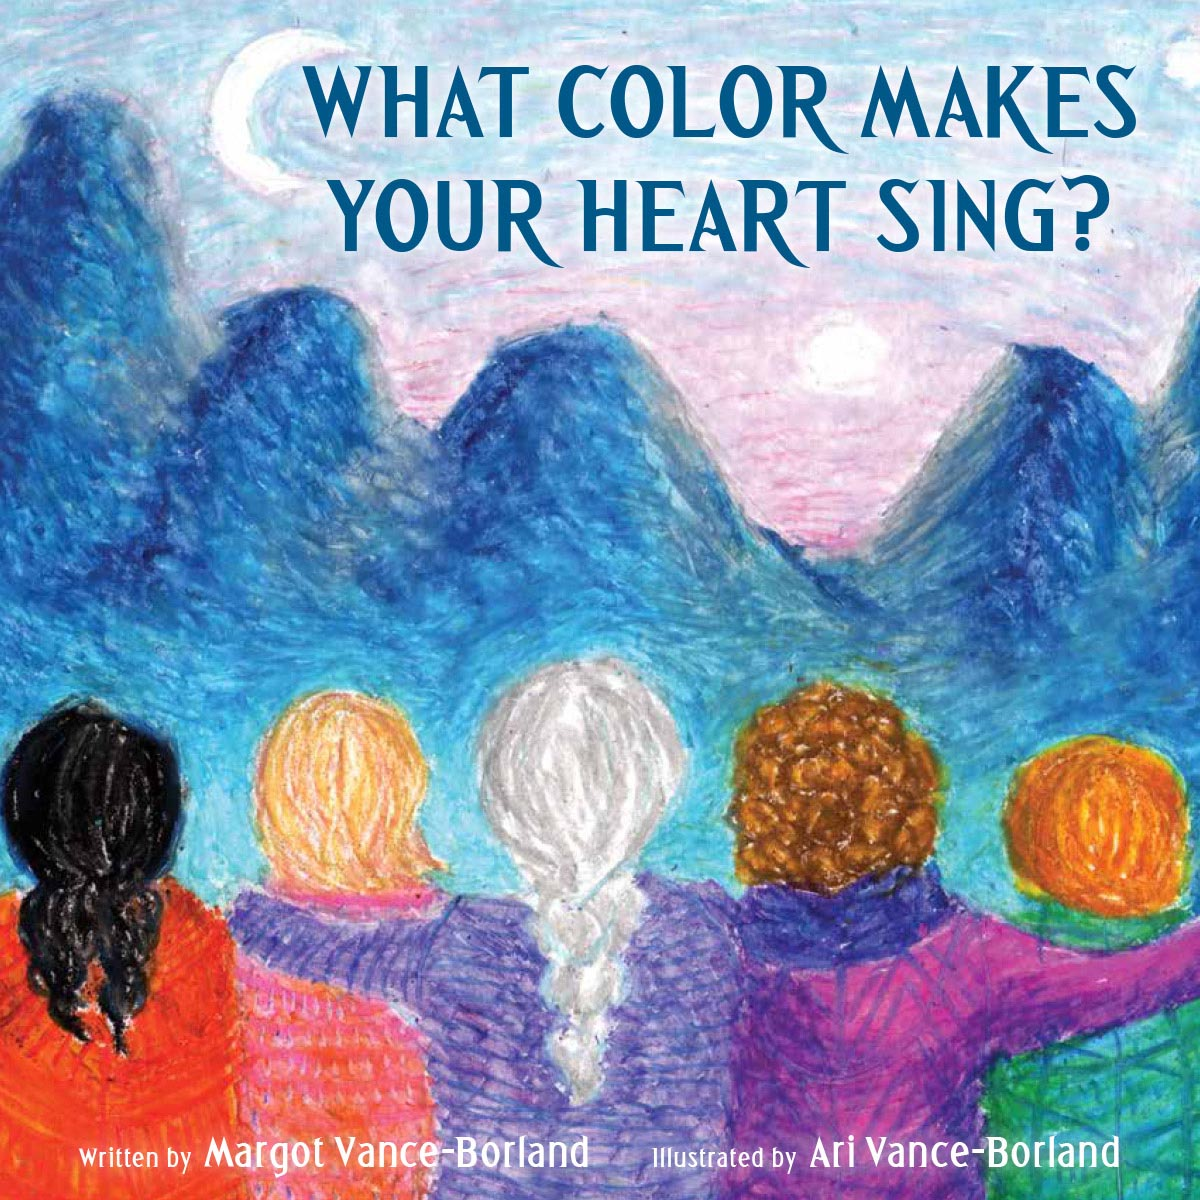 A very special children's book, written by Margot Vance-Borland and illustrated by her daughter.  Click to purchase this book via Amazon , or visit Grass Roots Bookstore in downtown Corvallis to purchase.